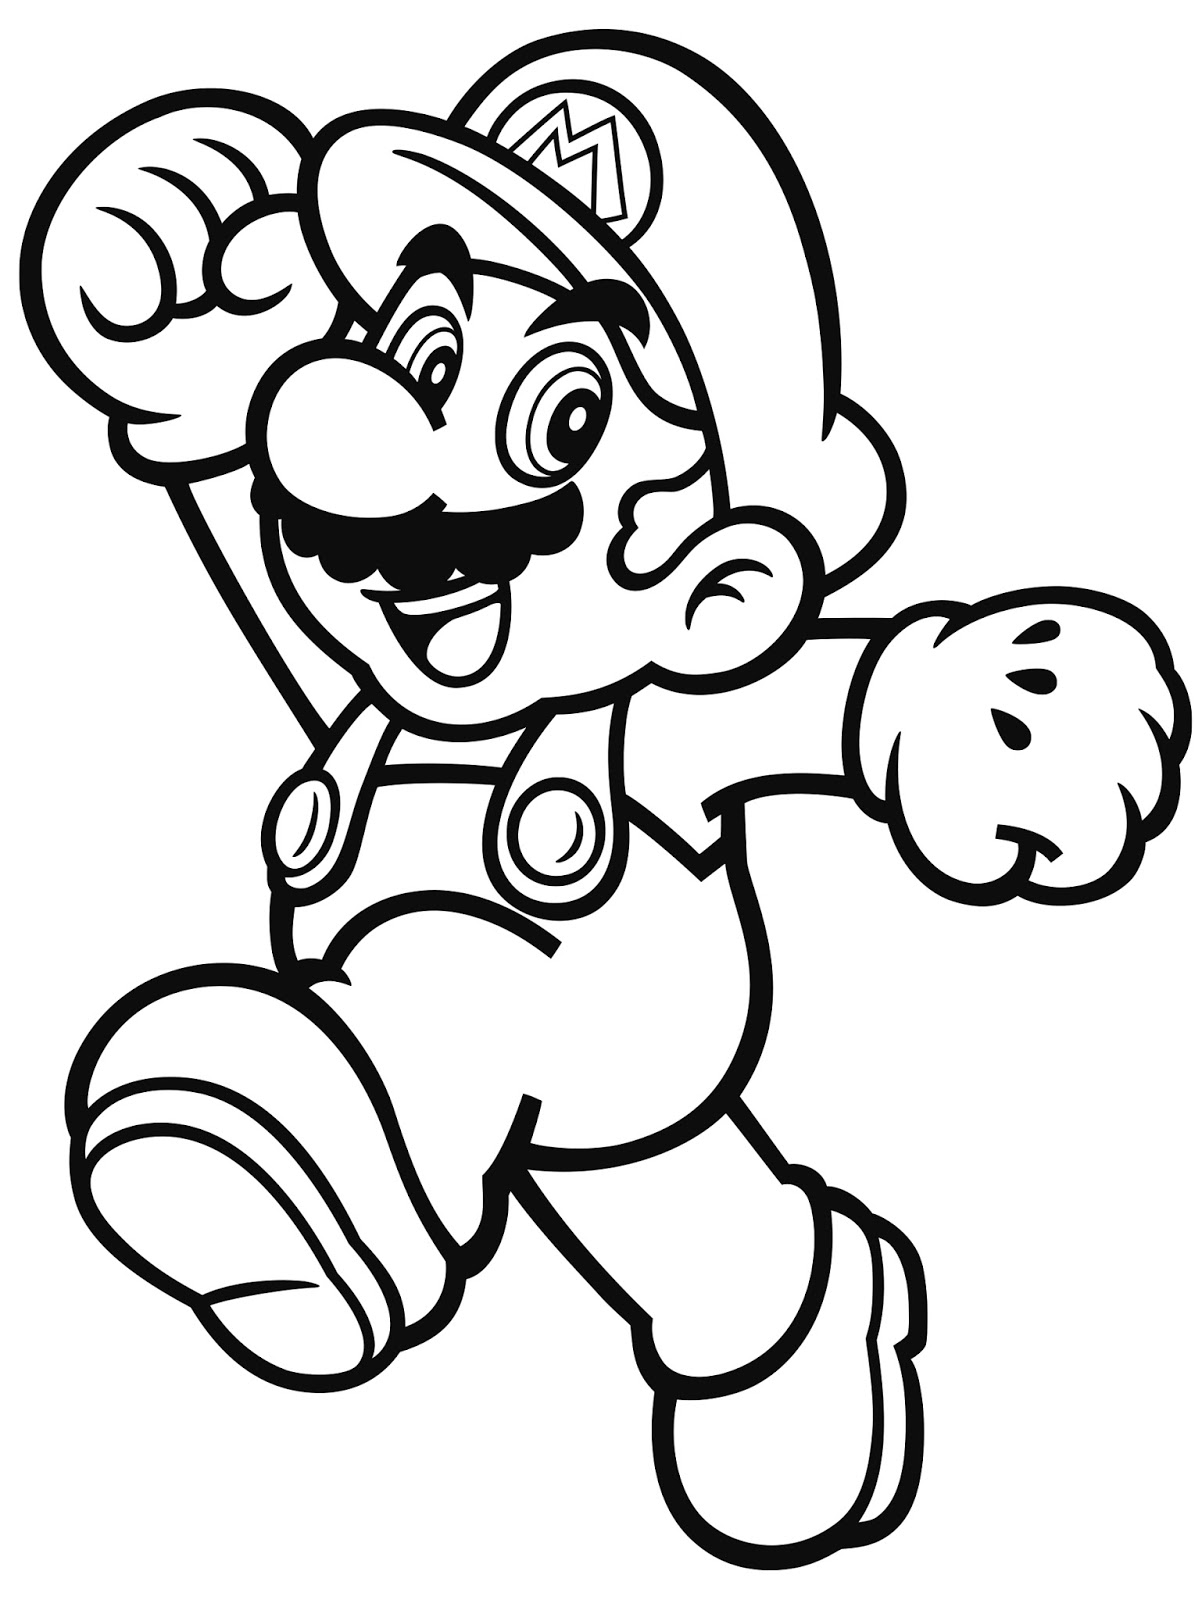 nintendo characters coloring pages at getdrawings | free